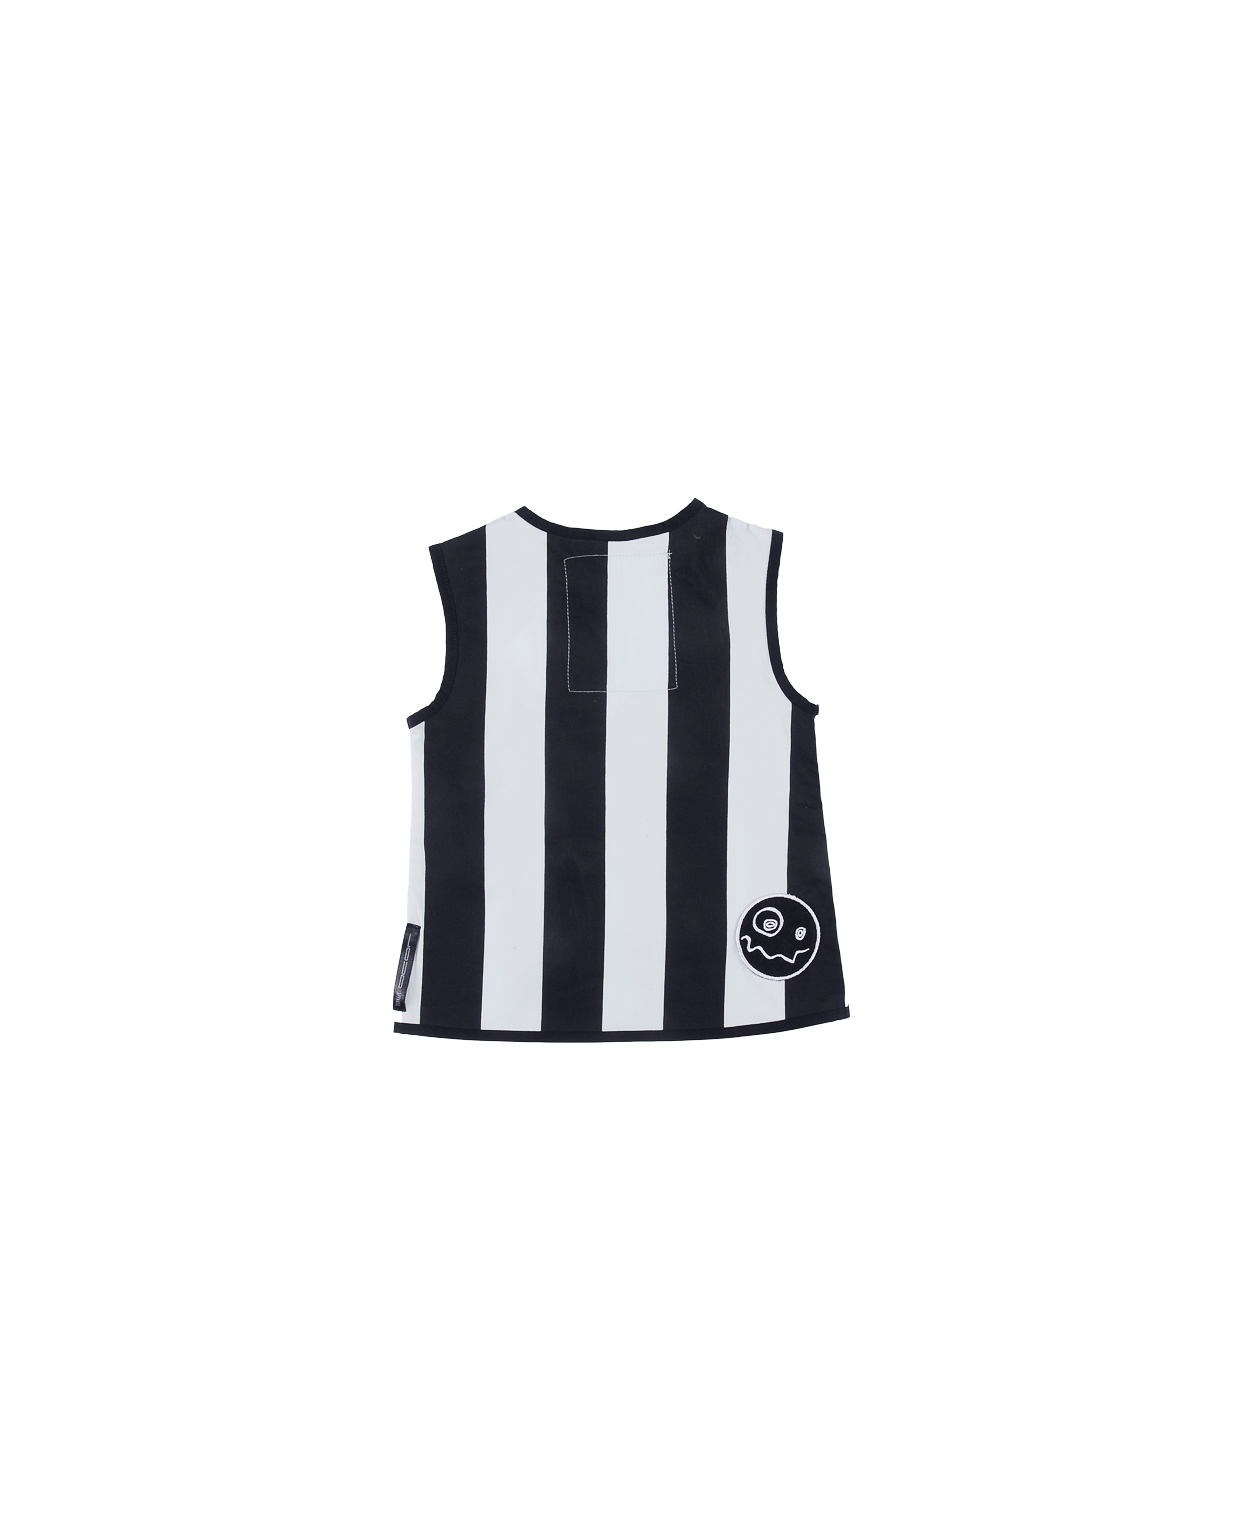 LOUD Stripes Baby Vest